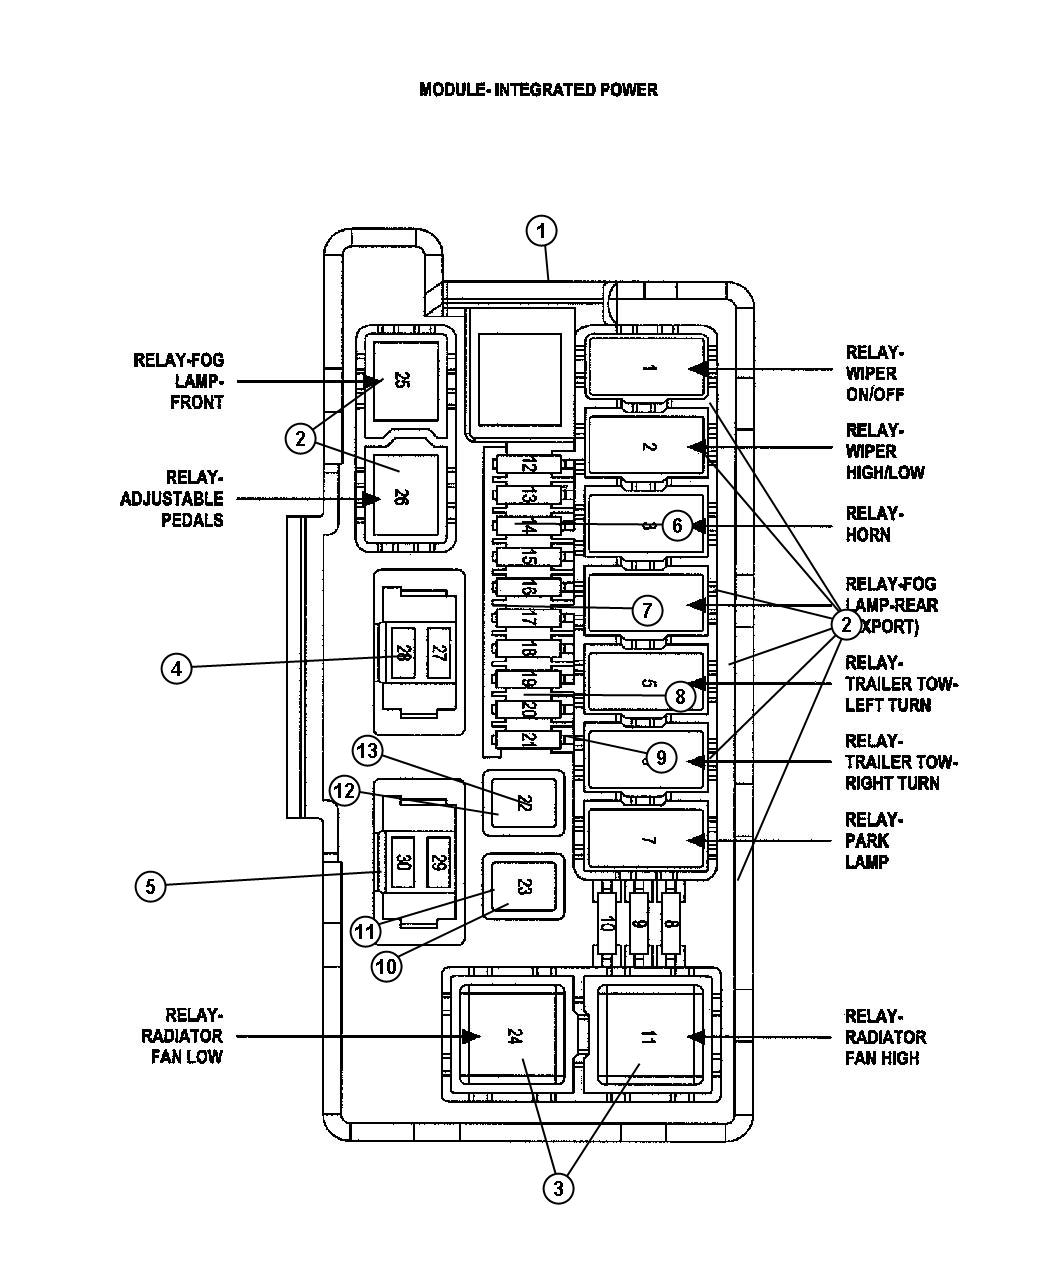 Diagram Of 1990 Chevy Silverado Fuse Box besides 05 Kj Cig Lighter Plug 28930 as well Fuel Pump Dodge Ram 1500 360 Engine Diagram in addition Result Trailer Wiring Diagram Electric together with Dodge Dakota Wiring Diagrams. on trailer wiring harness for jeep liberty